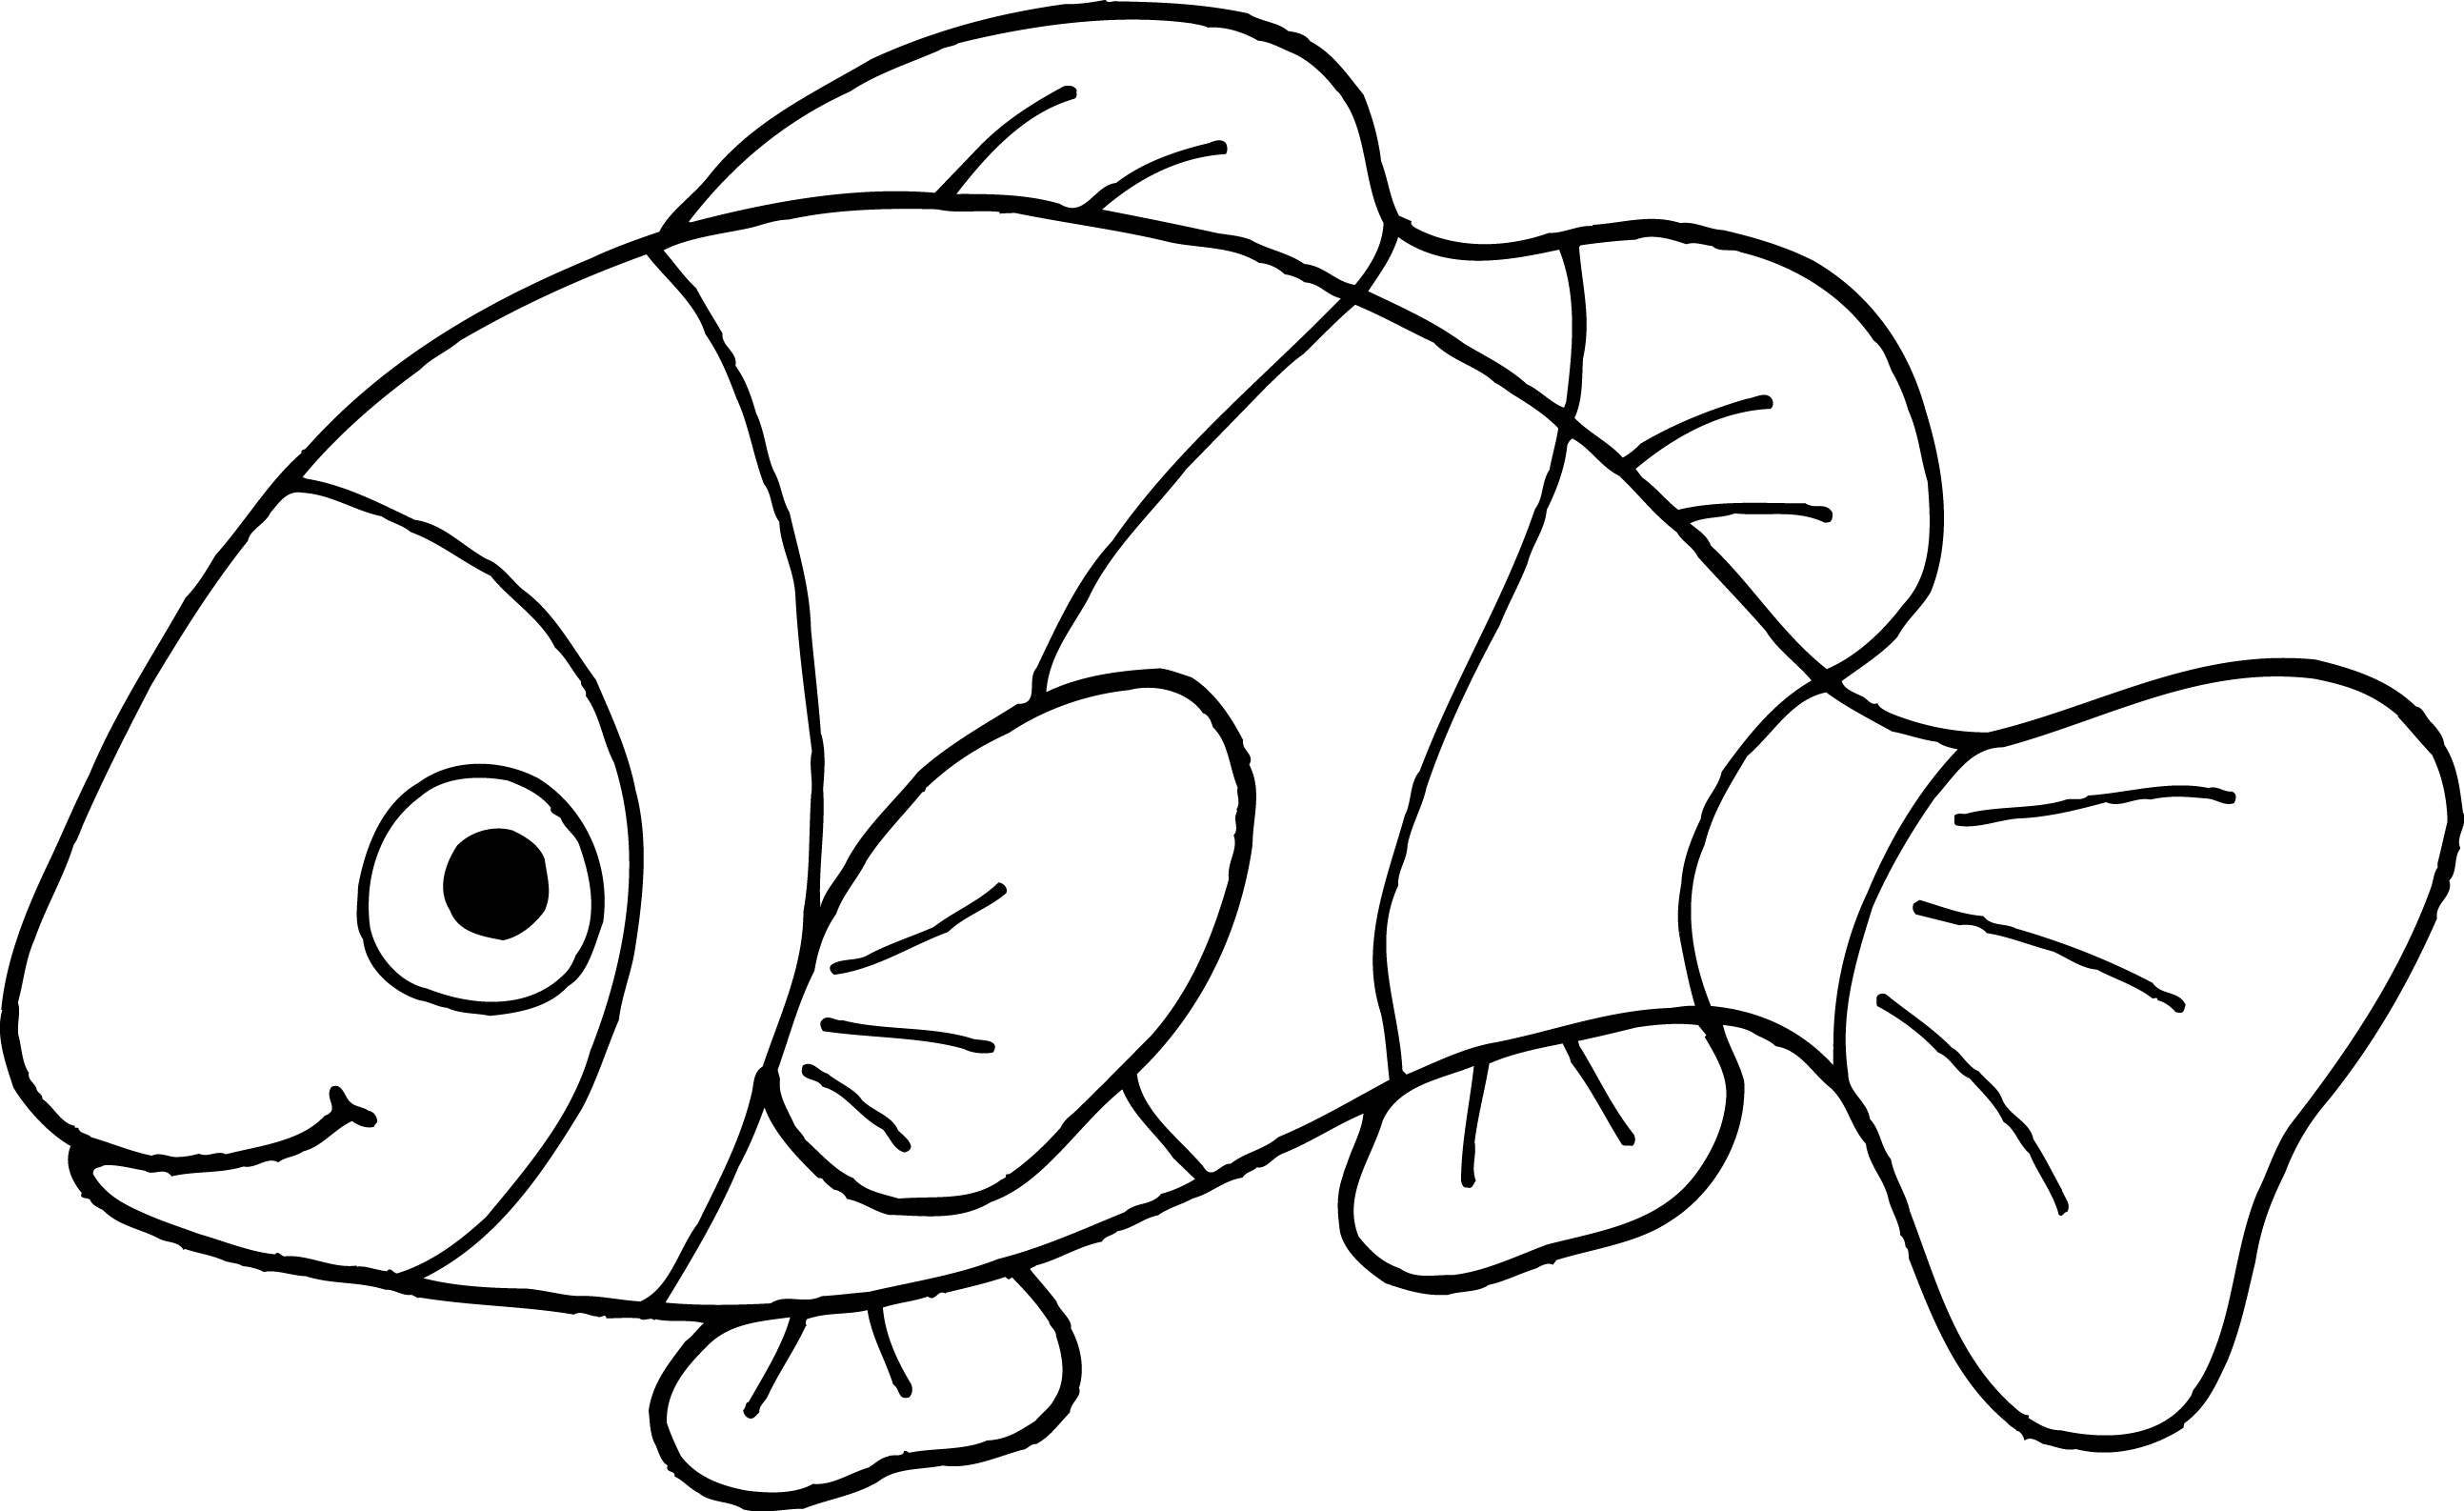 collection of clown. Nemo clipart black and white